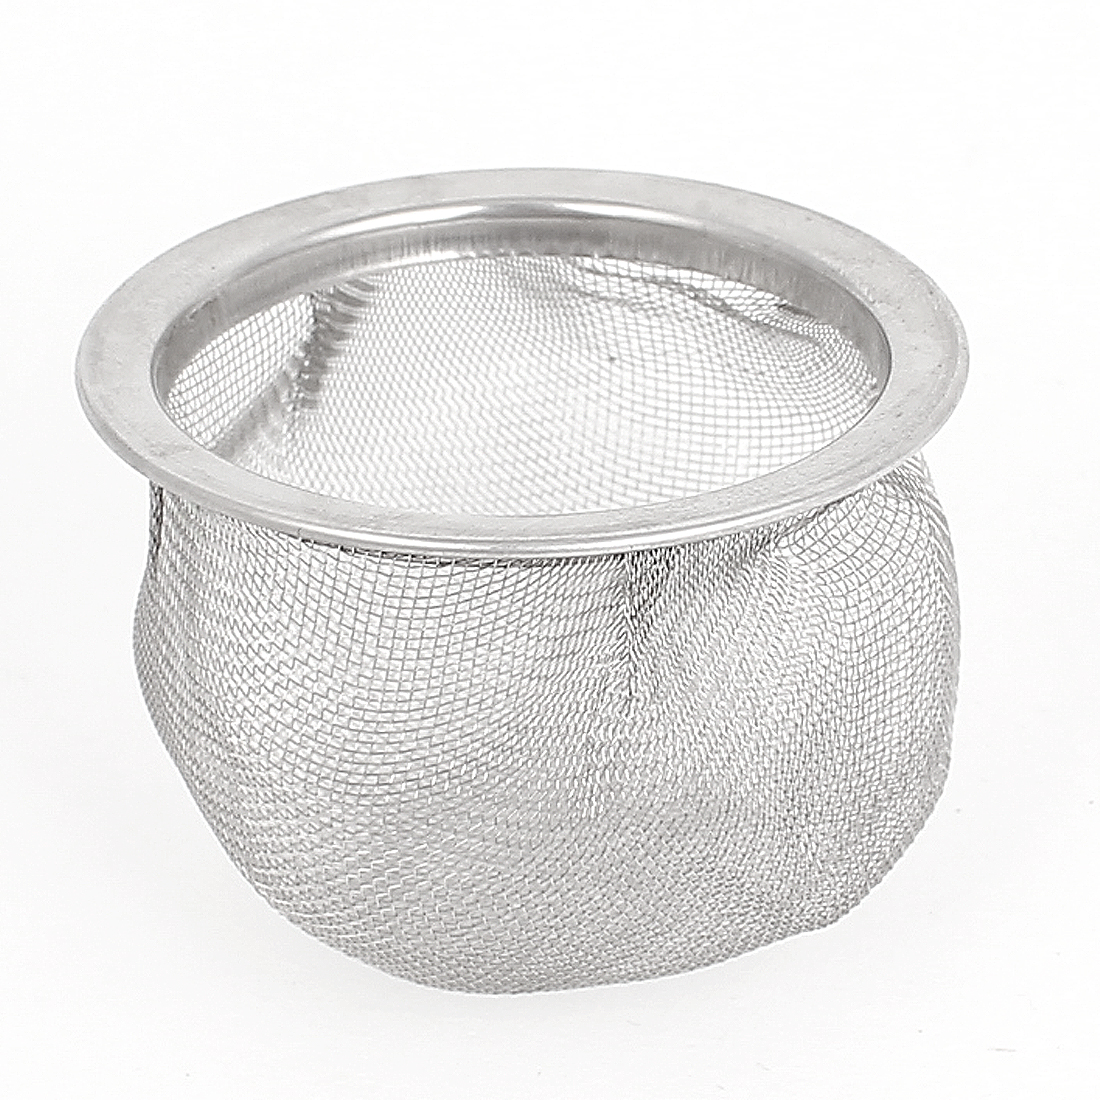 55mm Dia Silver Tone Stainless Steel Basket Mesh Net Tea Strainer